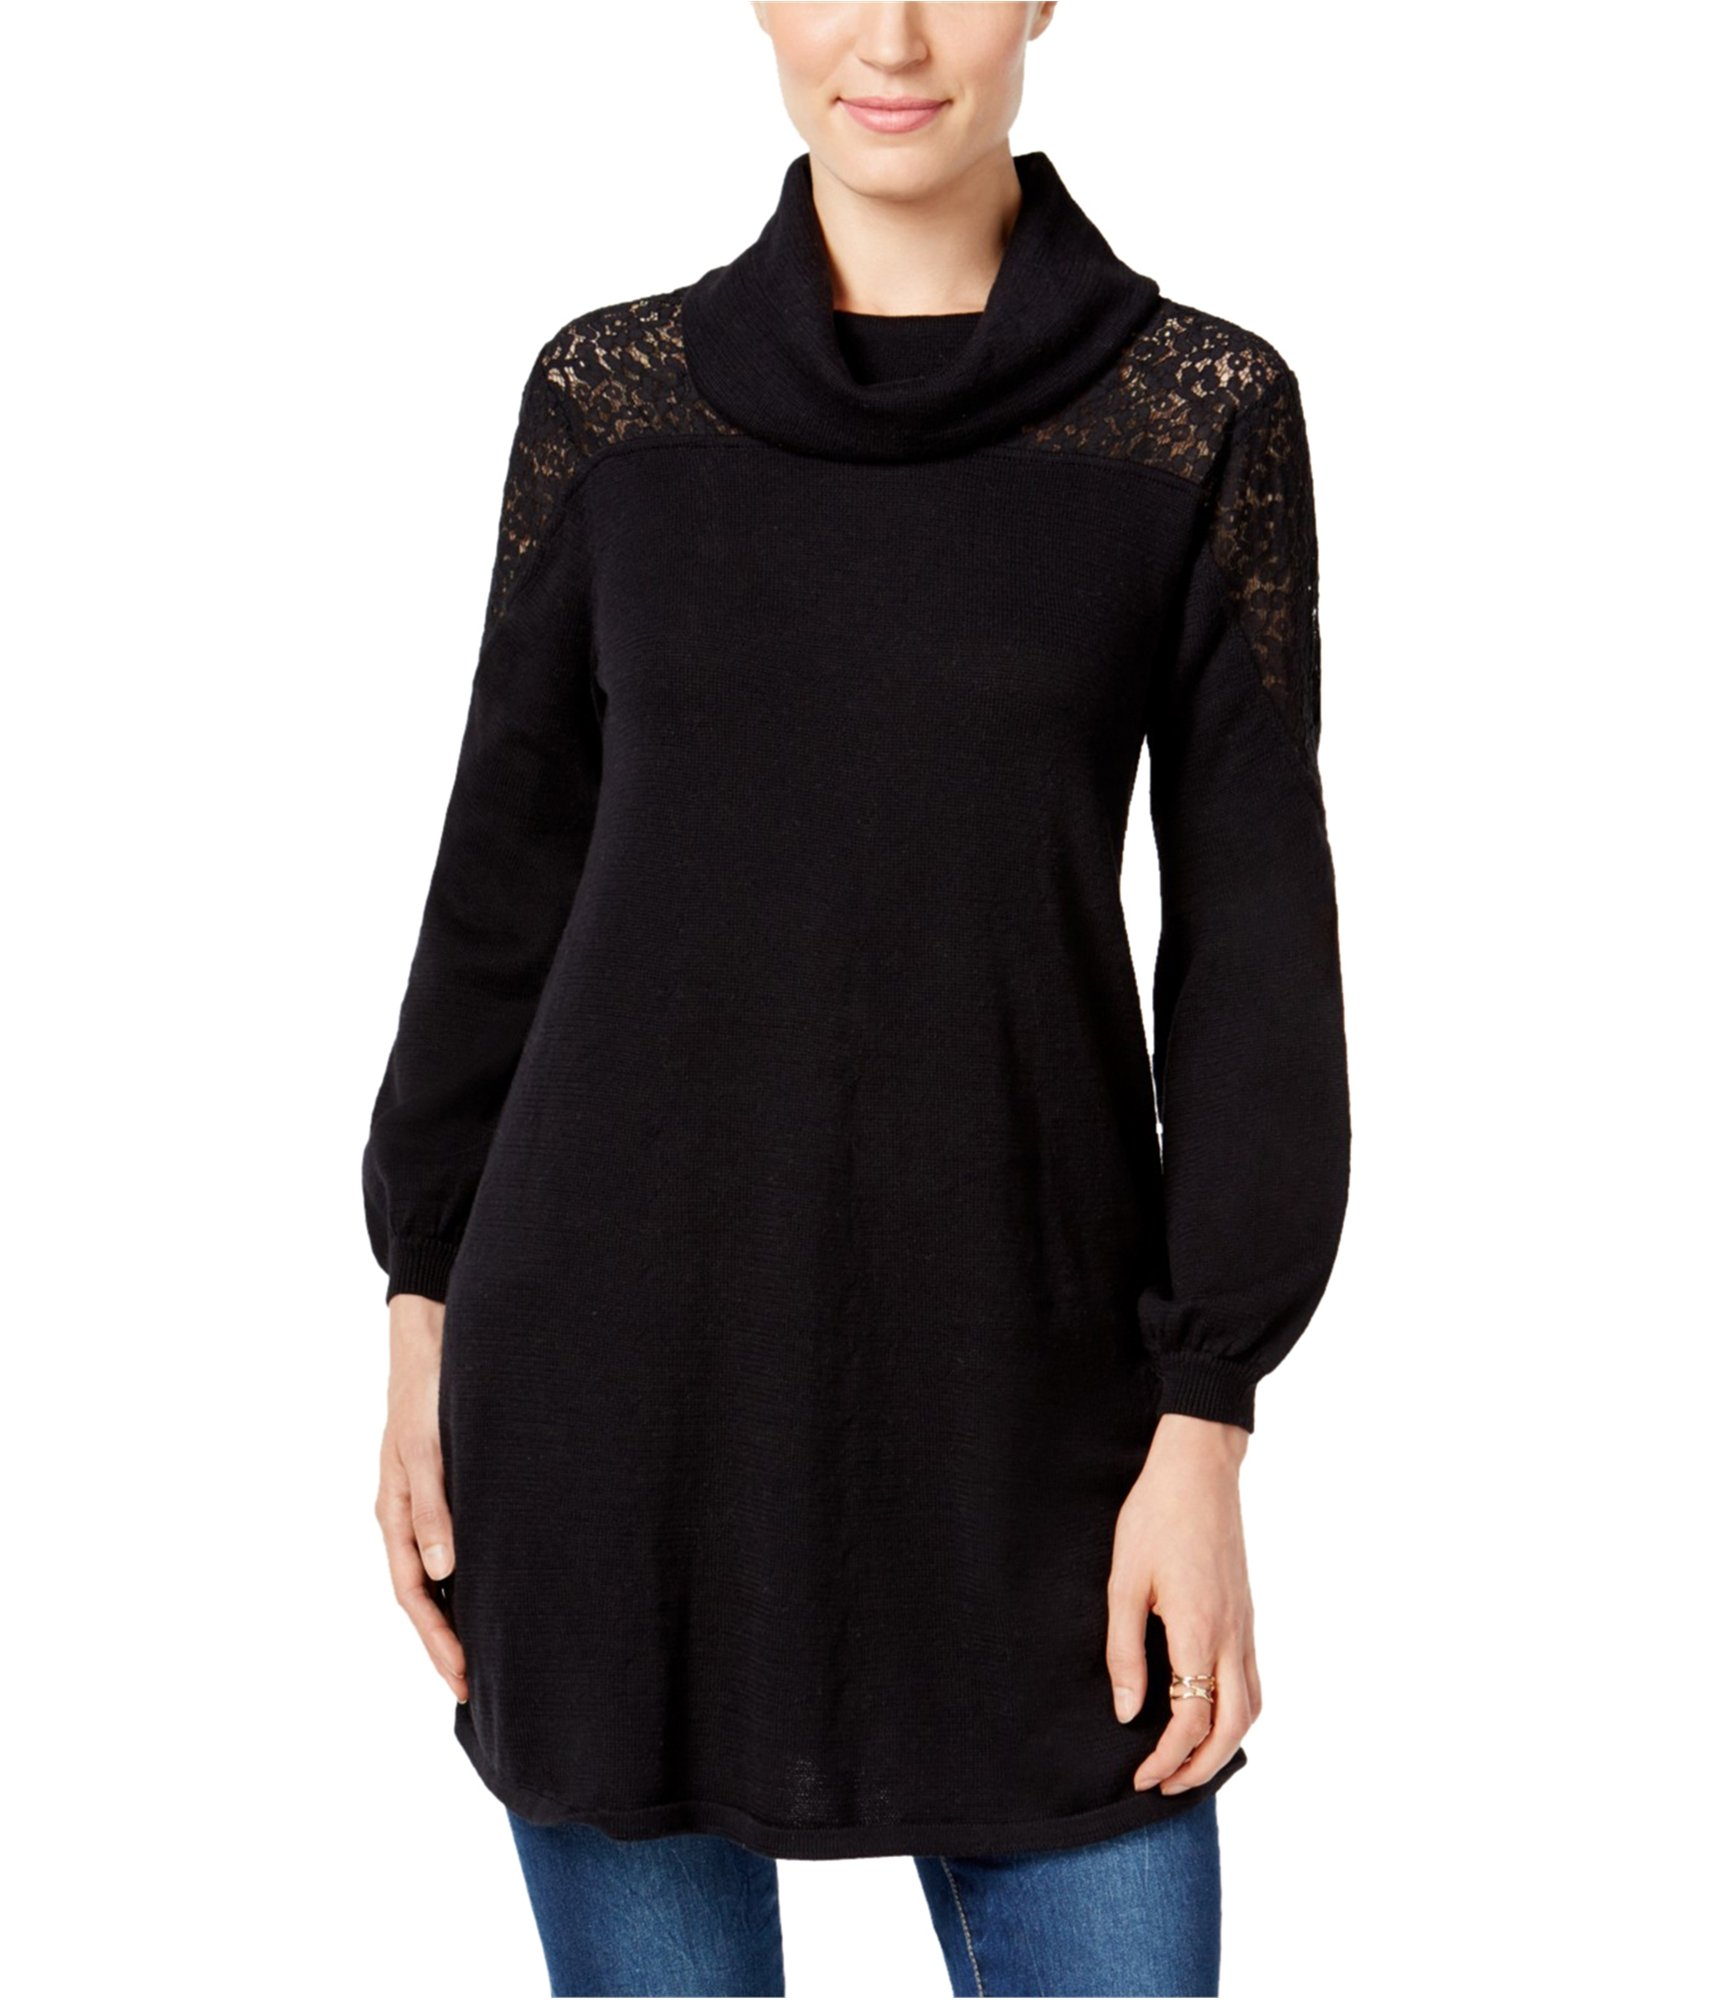 Style & Co. Women's Black Lace Cowl-Neck Pullover Sweater PL